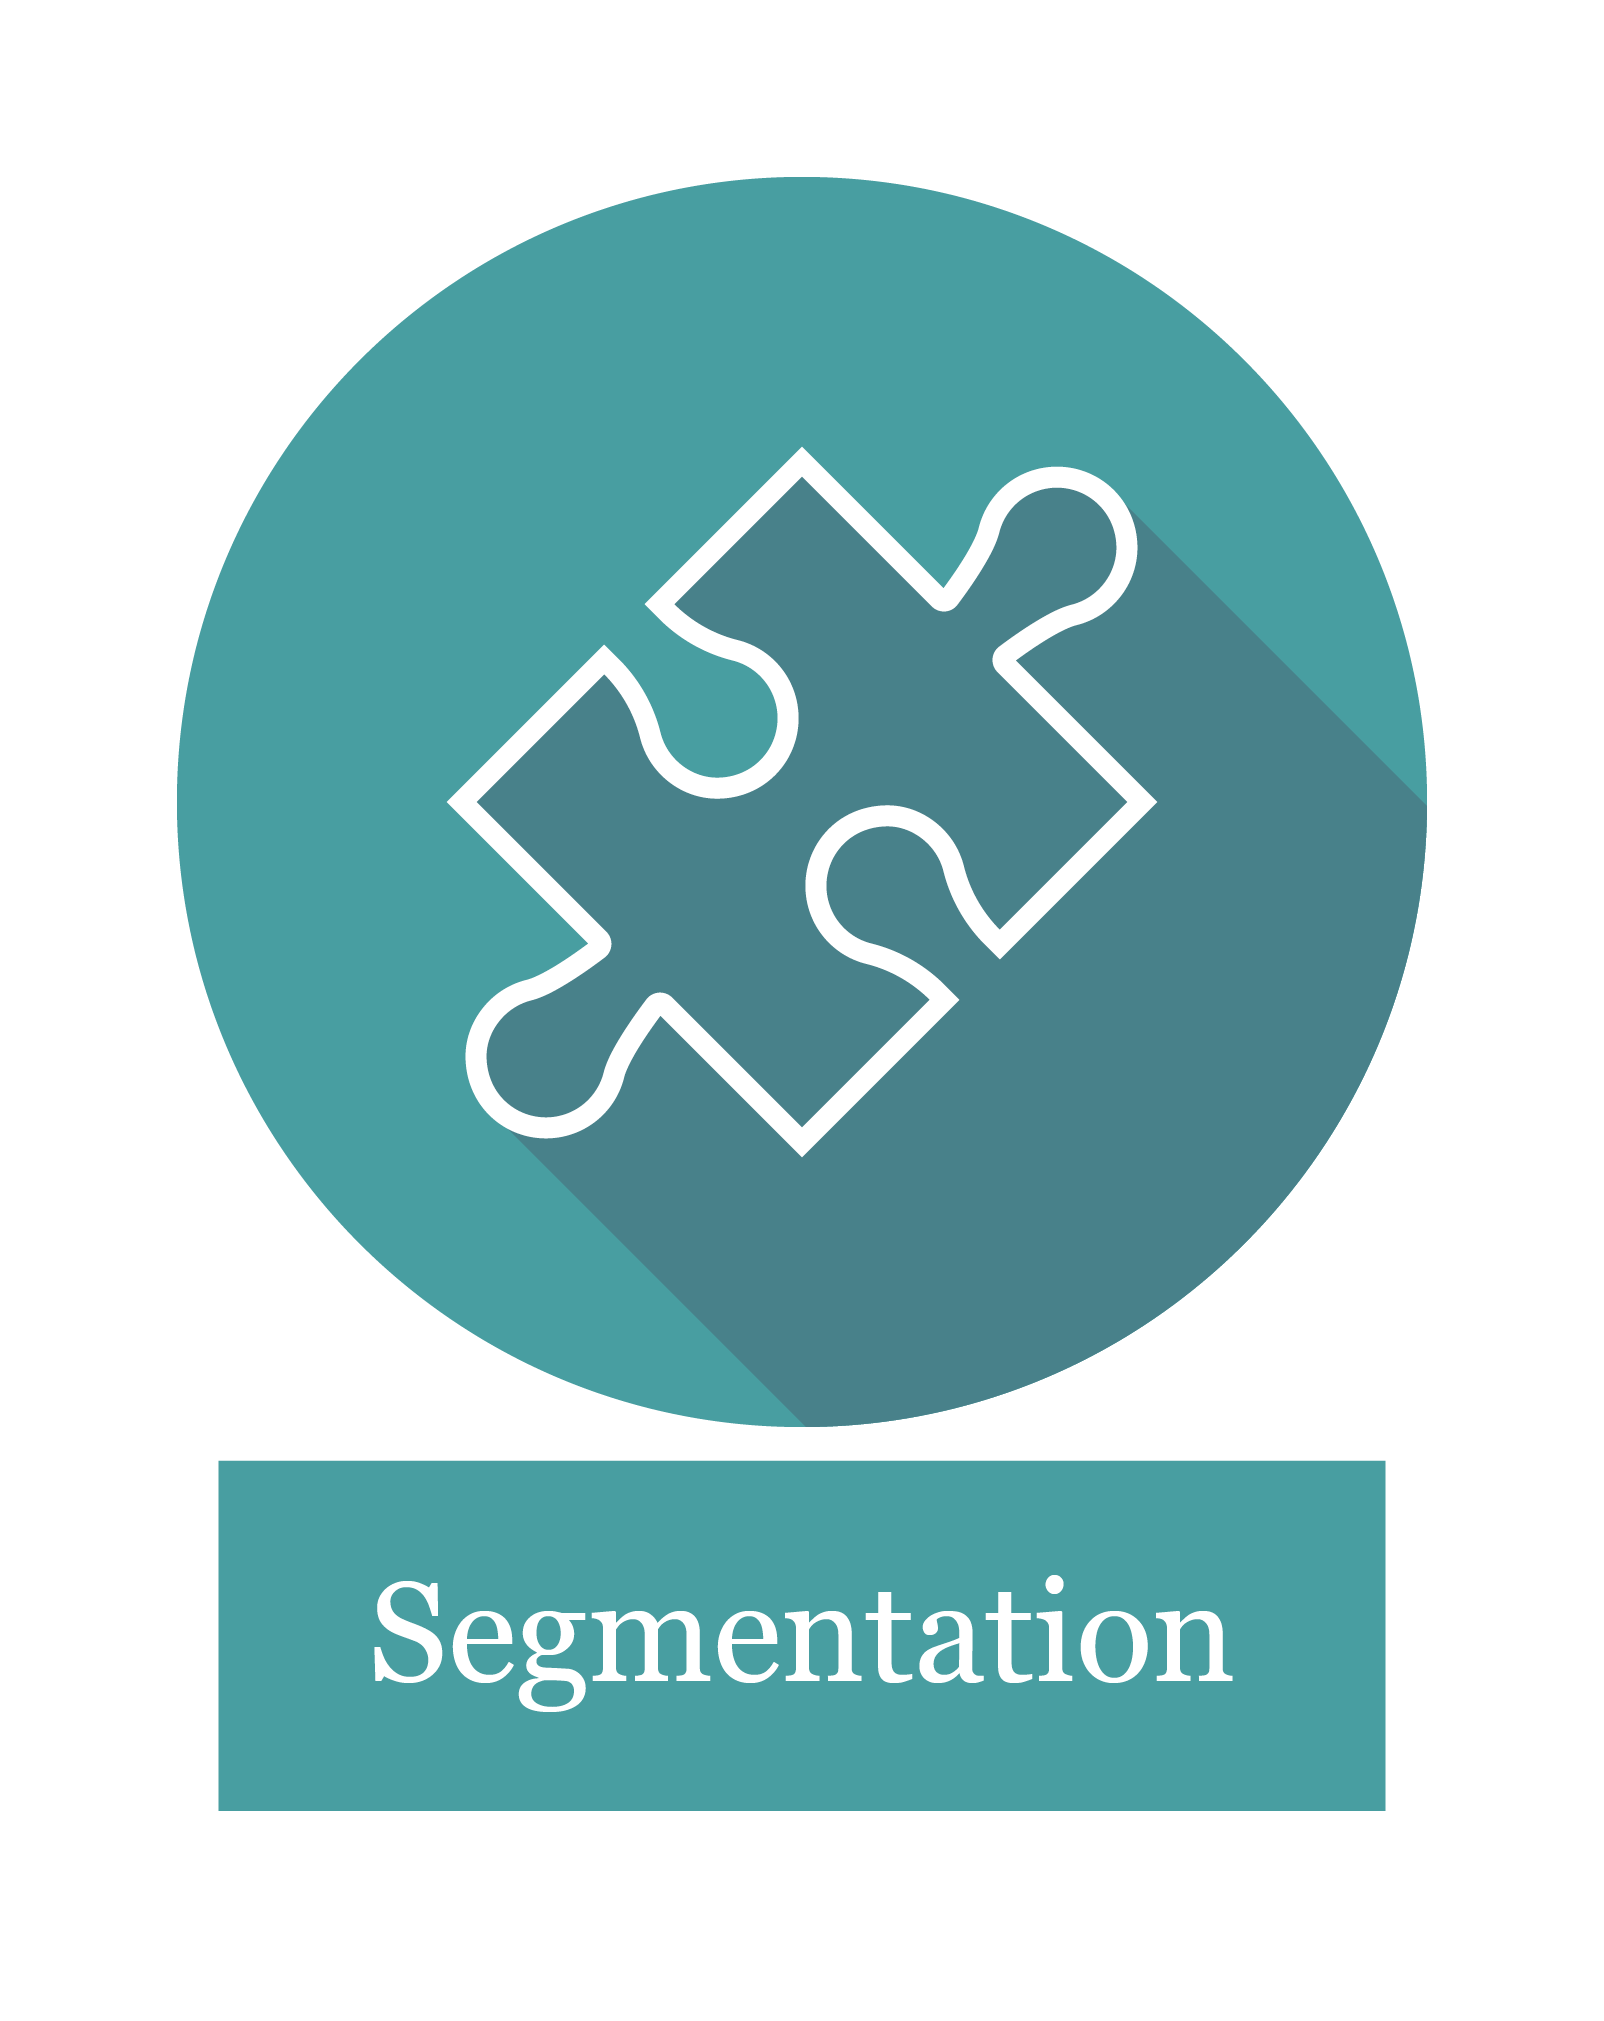 - Segmentation is the most powerful springboard to identify opportunities for targeting, portfolio planning, innovation and brand positioning. We have experience across many different sectors, and countries.We'll segment on consumers, needs, occasions or channel, or combinations of these, according to what's strategically relevant, using leading-edge data-science.Where relevant we fuse our segmentations with clients' customer-databases, to enhance targeting and actionability.We mobilise the business through engaging workshops focused on unlocking opportunities, which we quantify and prioritise commercially.